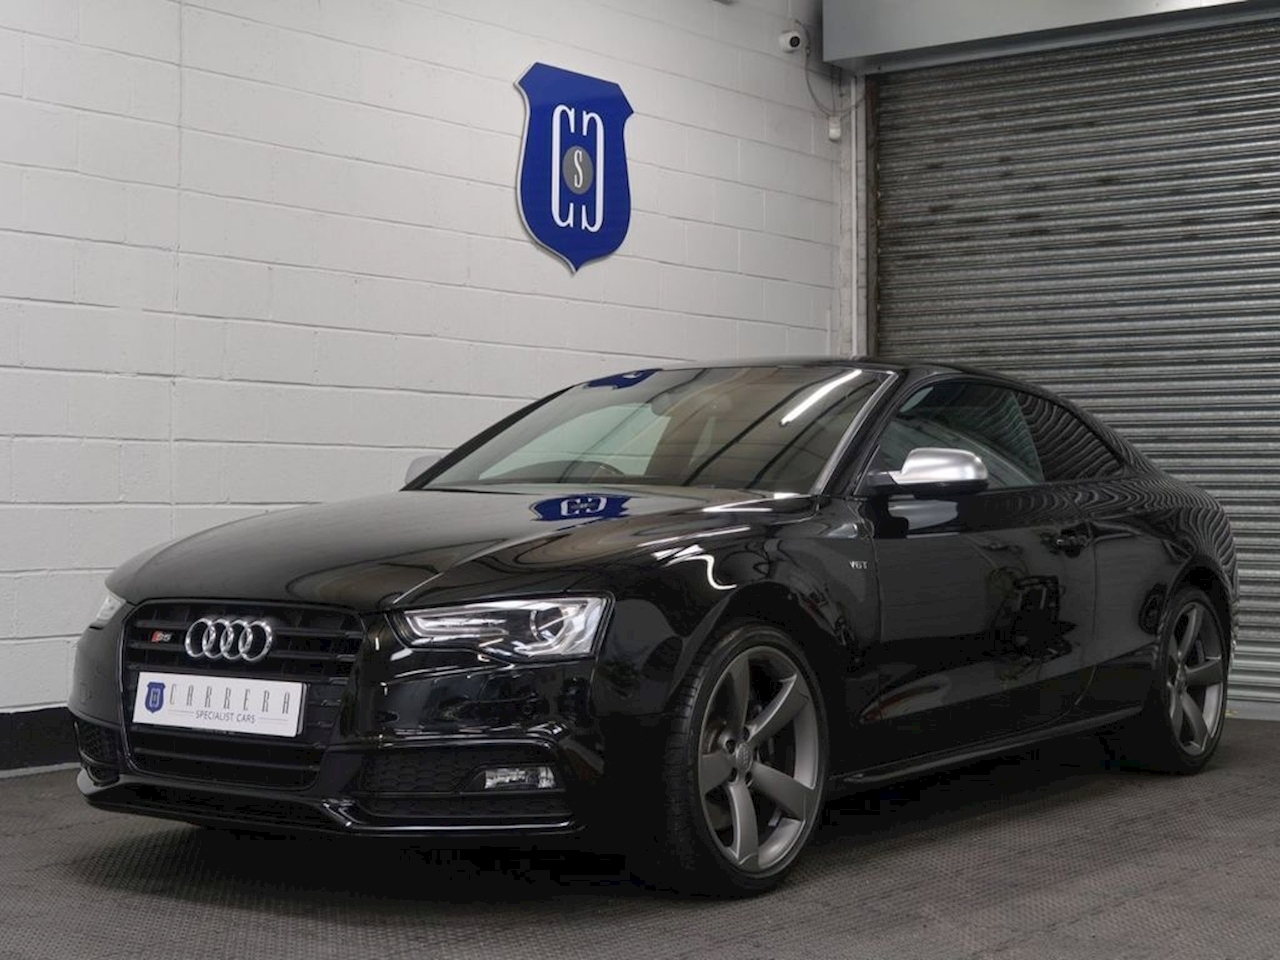 Audi A5 S5 Tfsi Quattro S Line Black Edition Coupe 3.0 Automatic Petrol